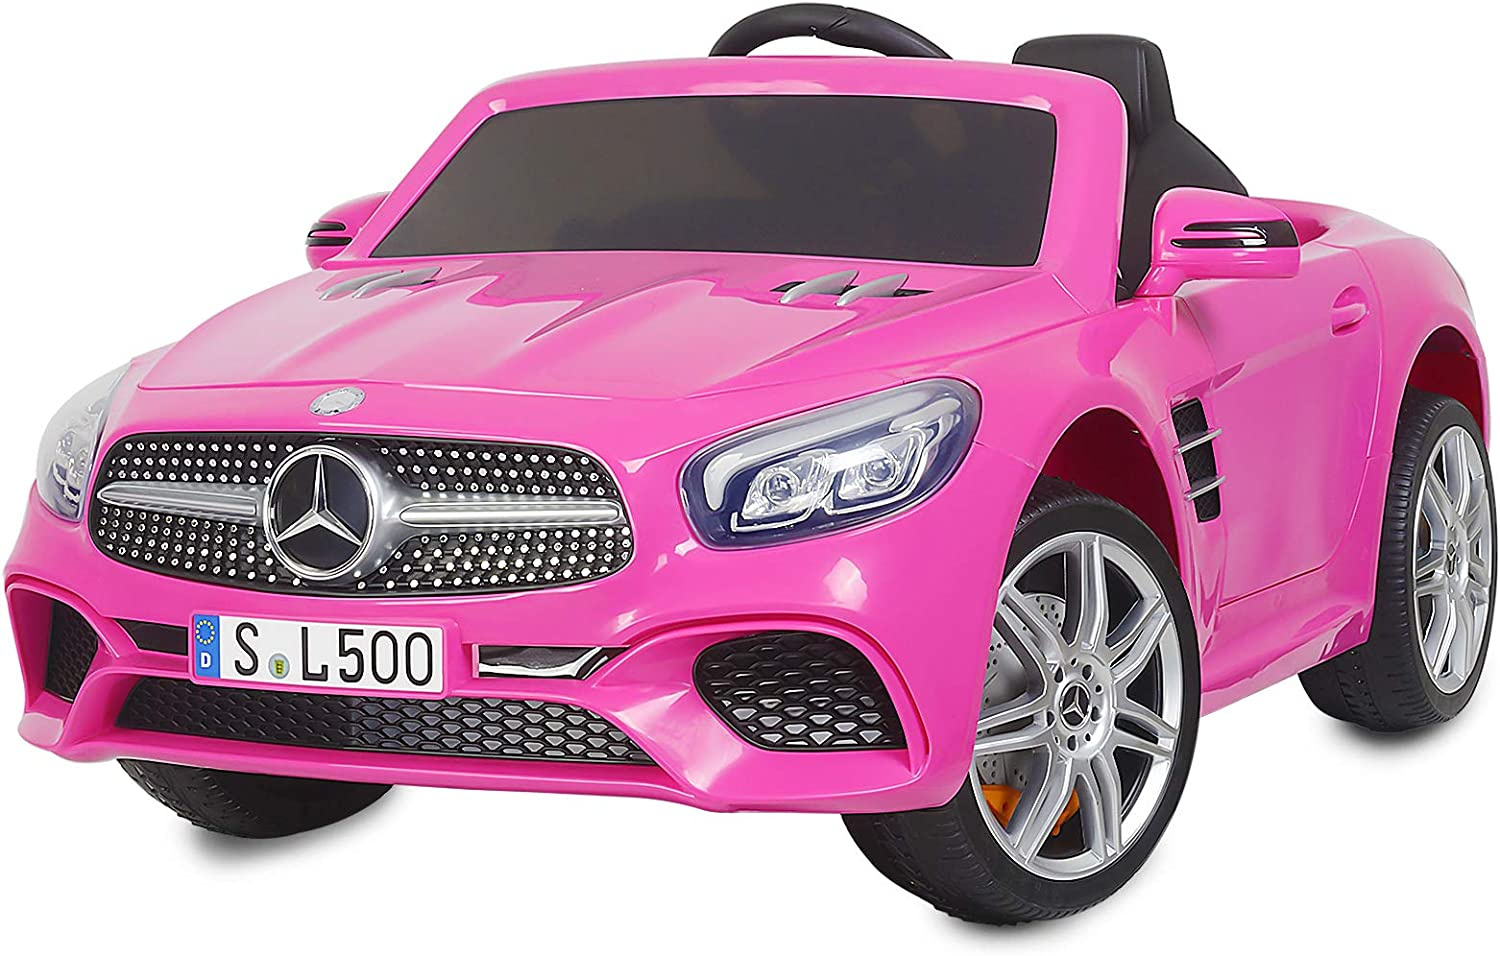 Amazon Com Uenjoy 12v Licensed Mercedes Benz Sl500 Kids Ride On Car Electric Cars Motorized Vehicles For Girls With Remote Control Music Horn Spring Suspension Safety Lock Pink Toys Games